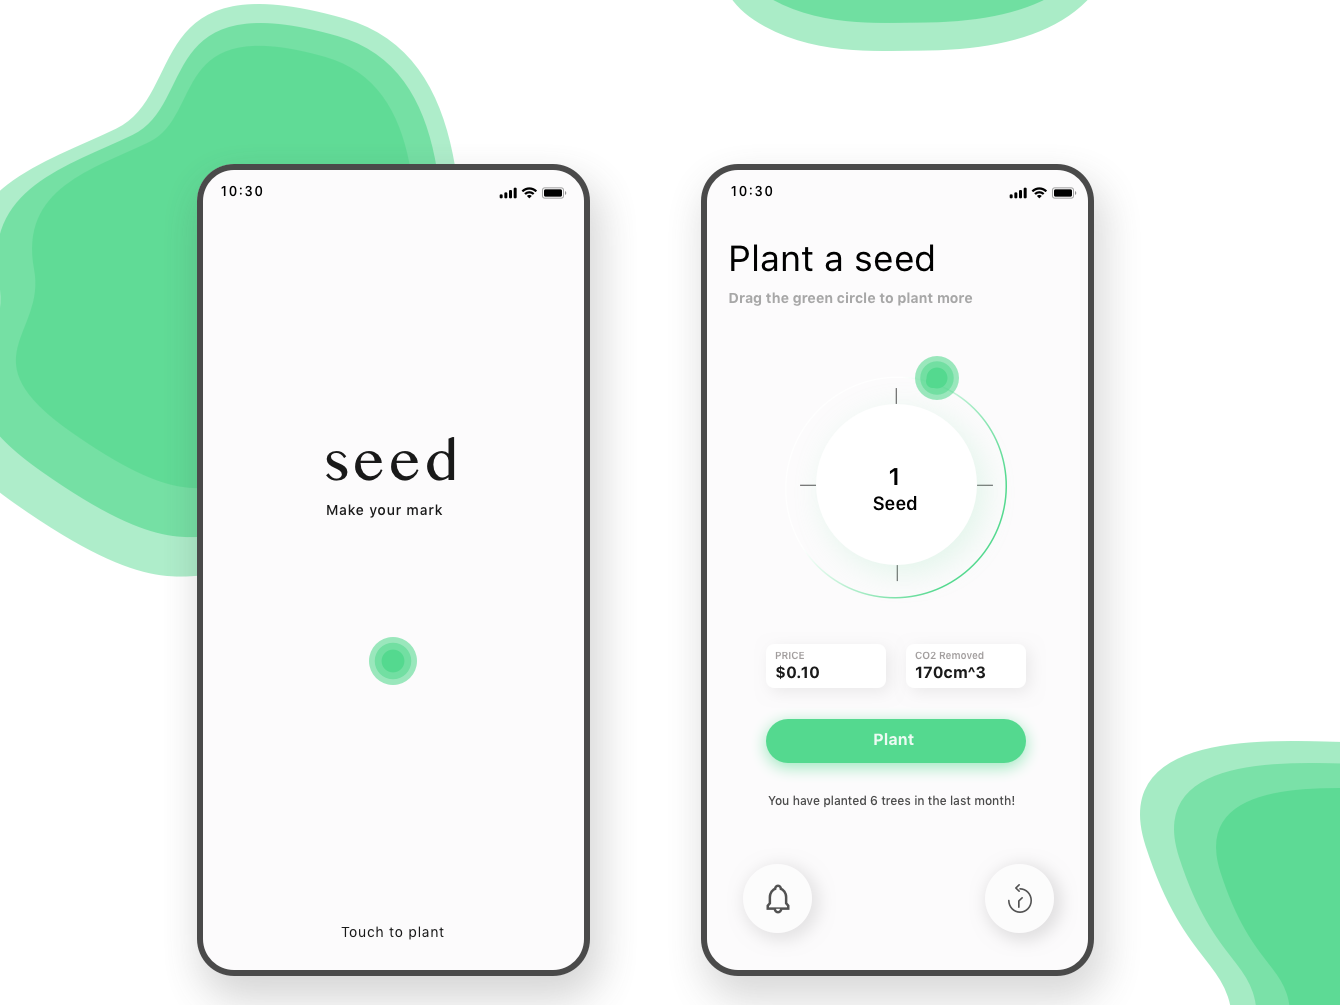 Plant a seed ux design sydney ui deisgn plant design environment  green iphone app iphone ios 10 earthday app  design ux  ui minimal ecofriendly app green environment